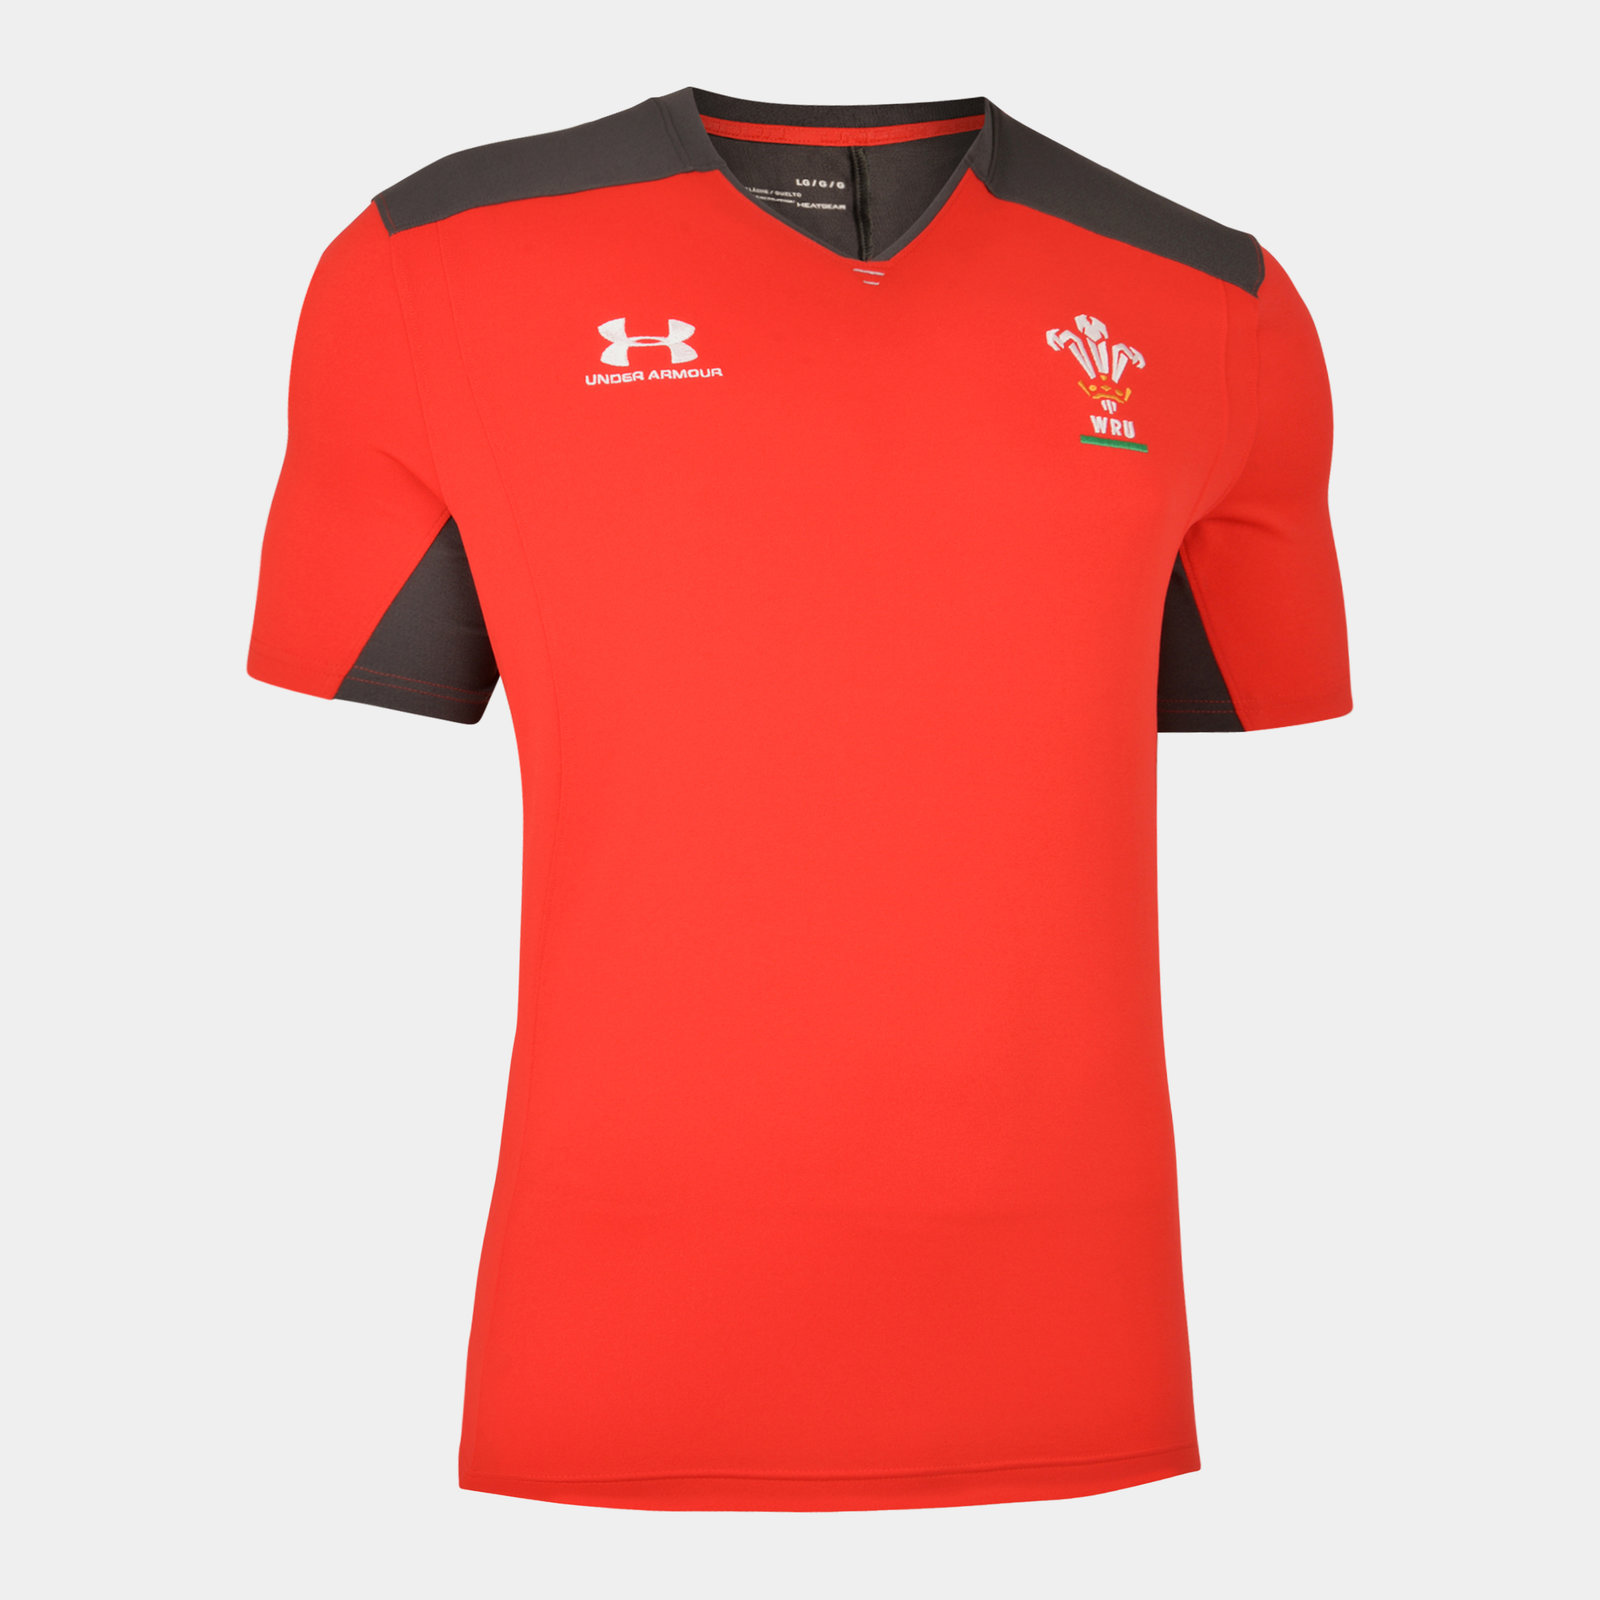 Under Armour Mens Wales WRU 2019 20 Players Rugby Polo Shirt Red